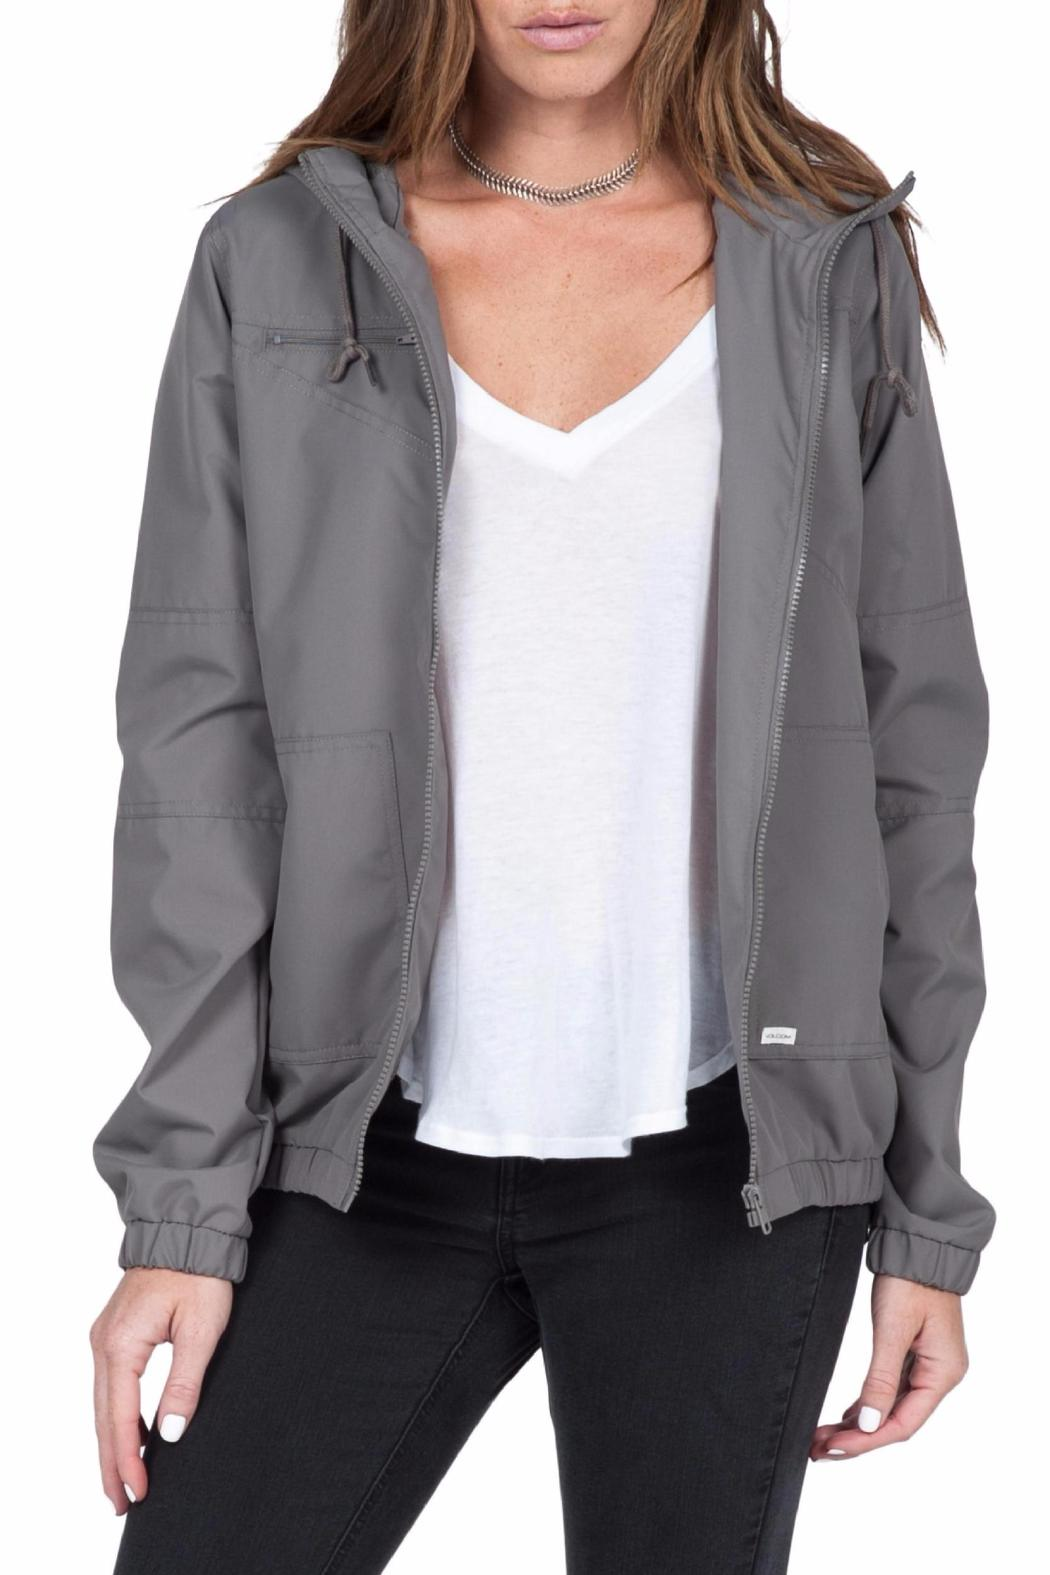 dd64e7615 Volcom Enemy Stone Jacket from Providence by Queen of Hearts and ...